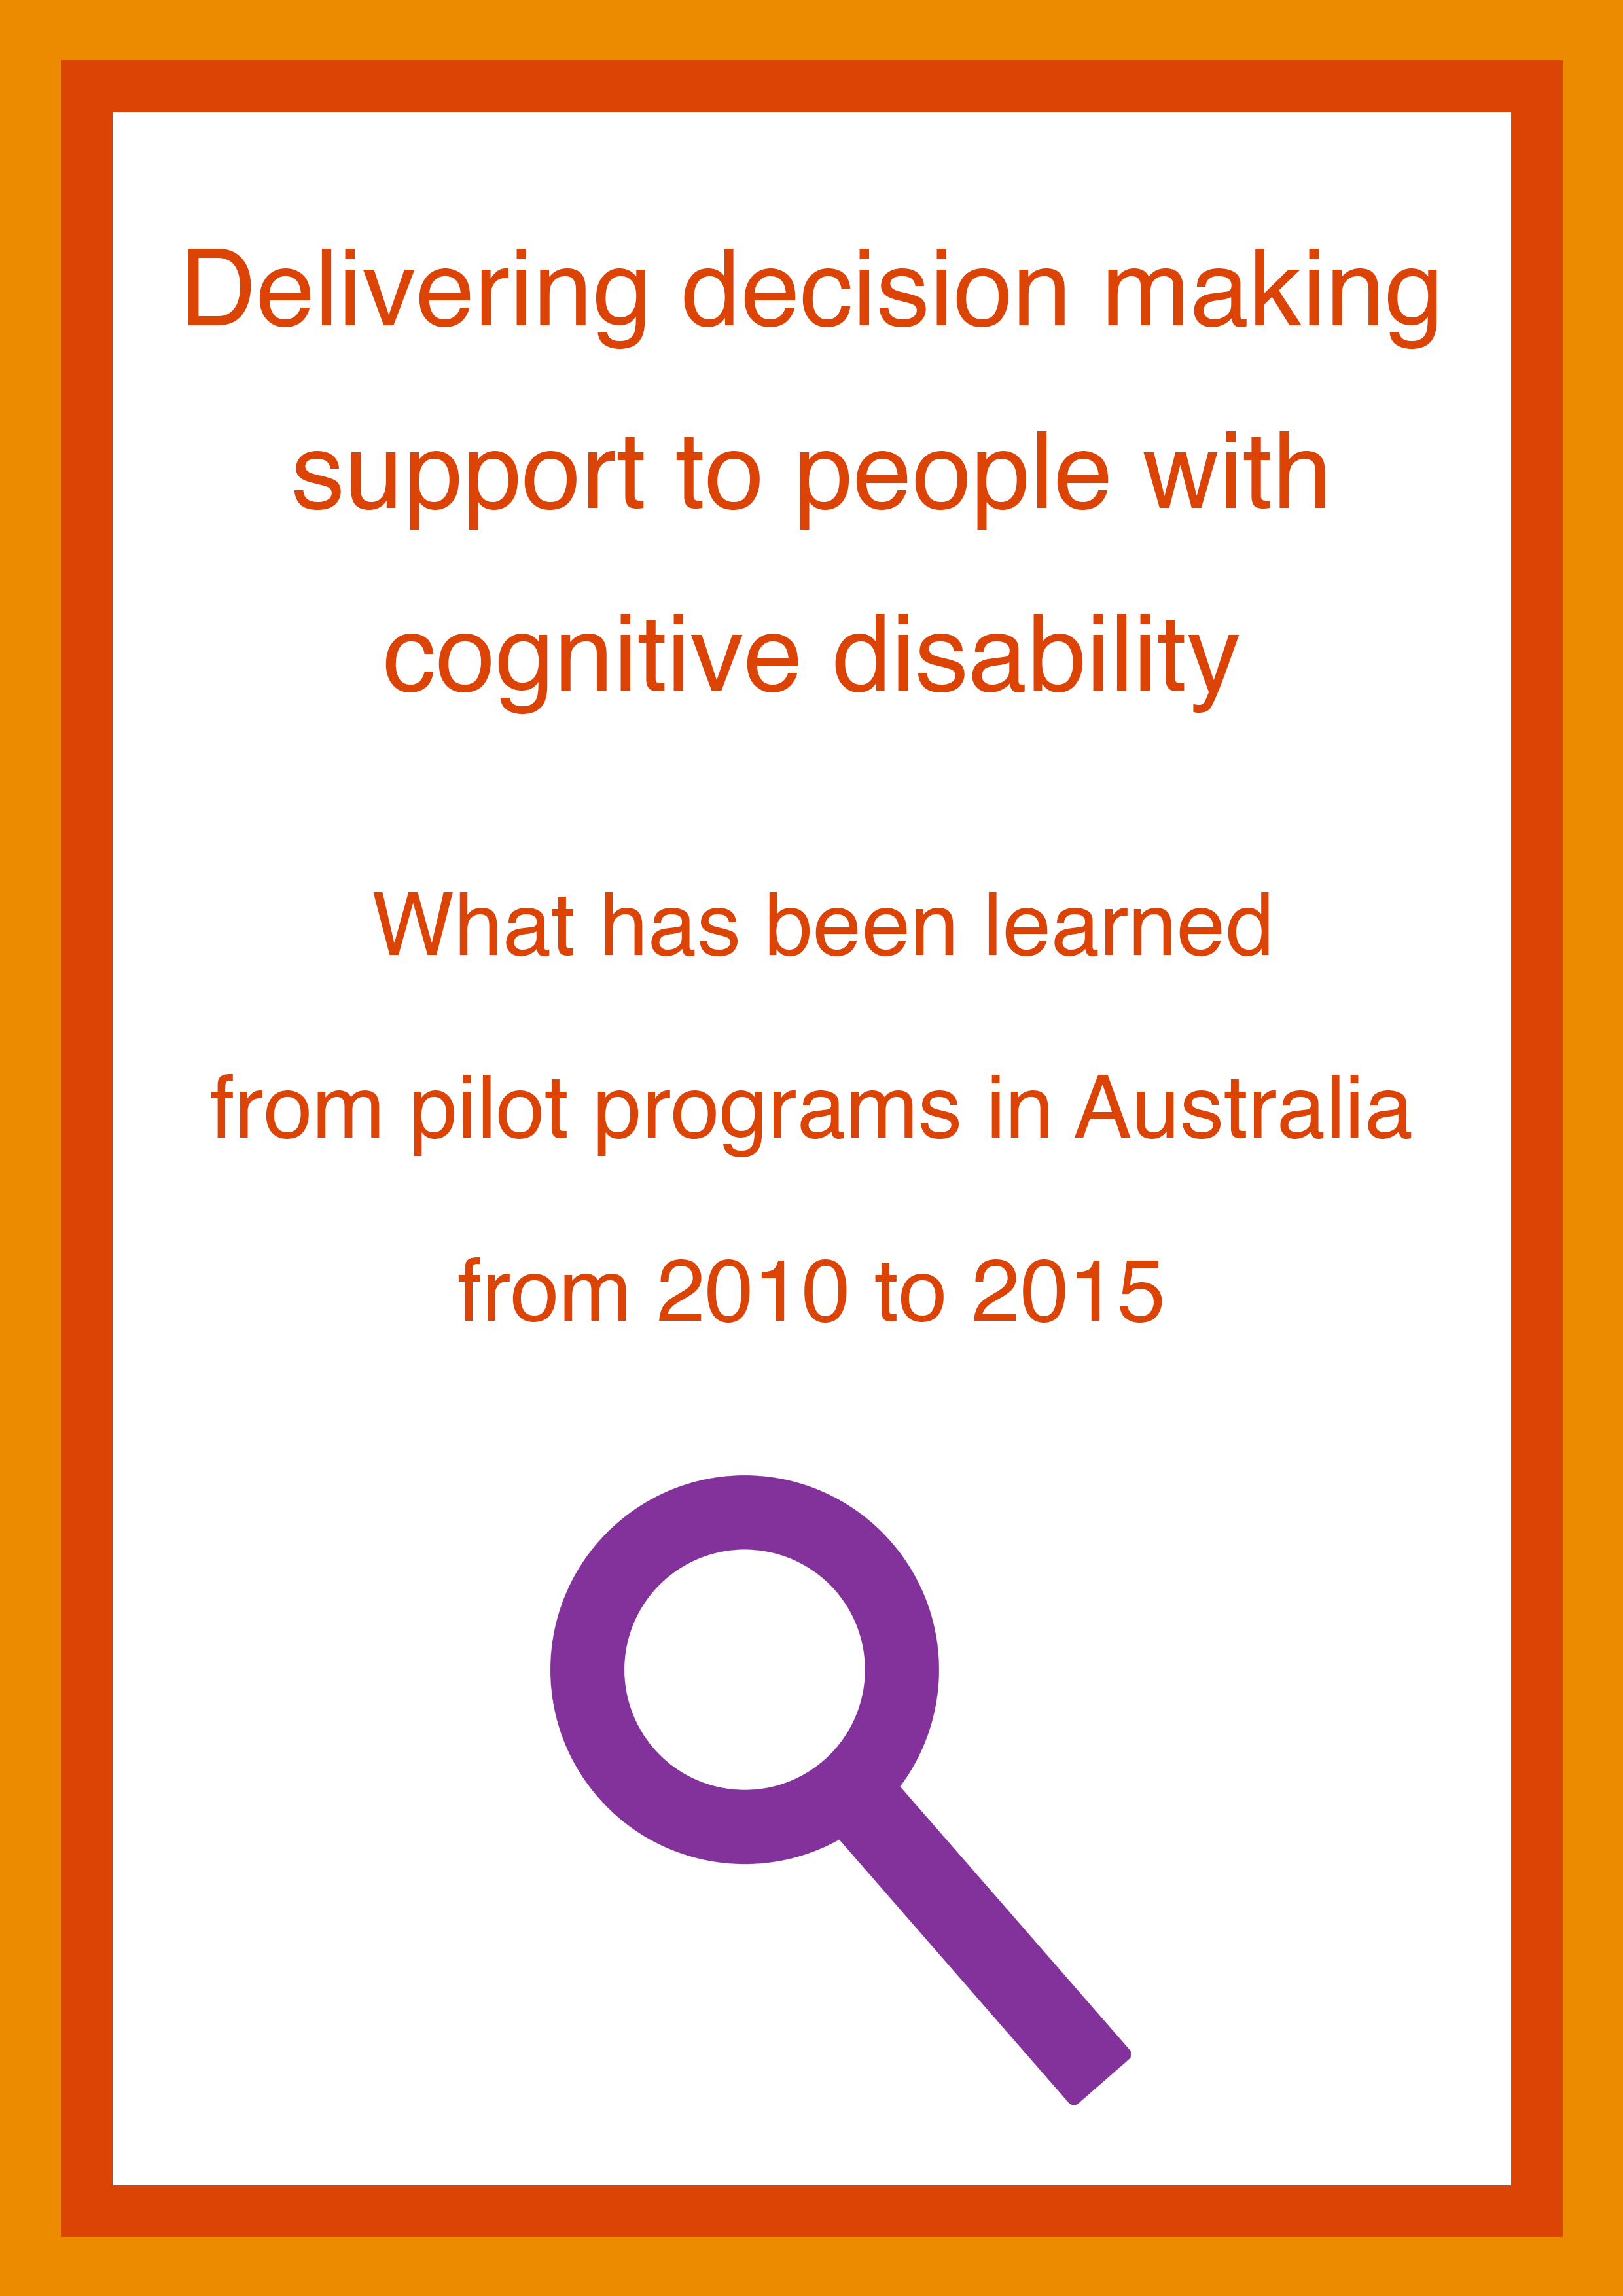 Cover art for: Delivering decision making support to people with cognitive disability — What has been learned from pilot programs in Australia from 2010 to 2015